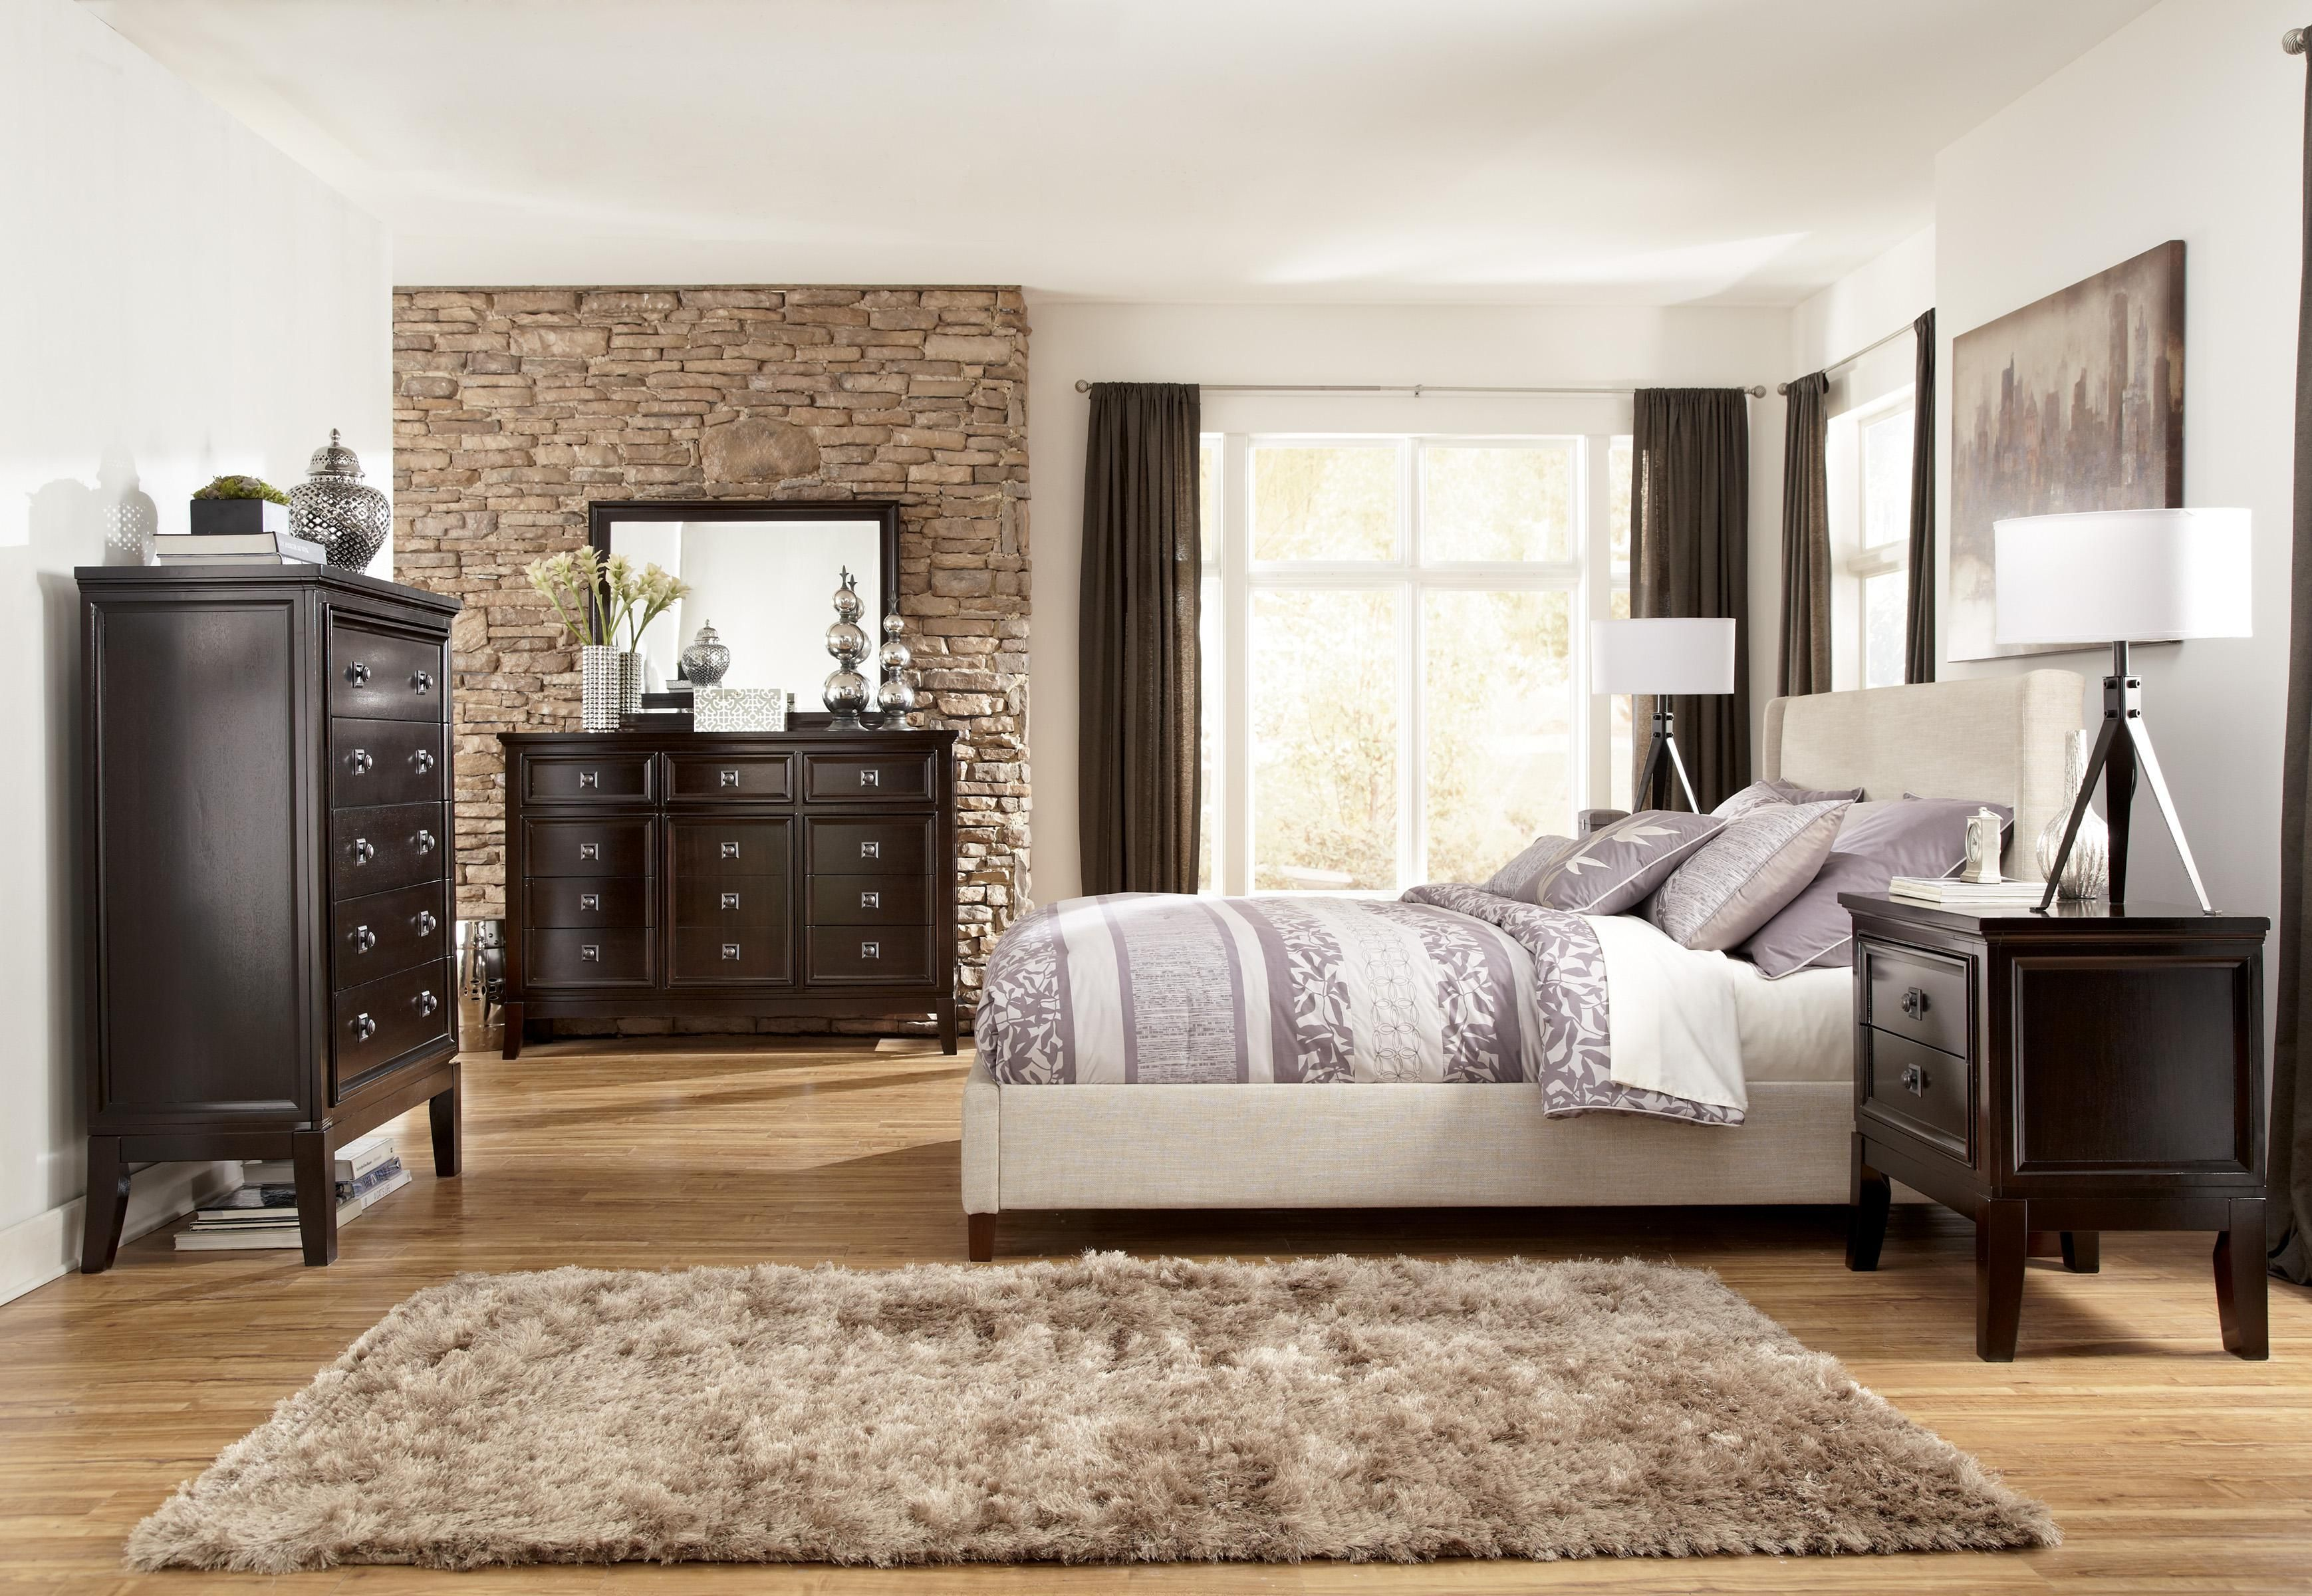 Create balance in a room filled with dark wood accents beige woven